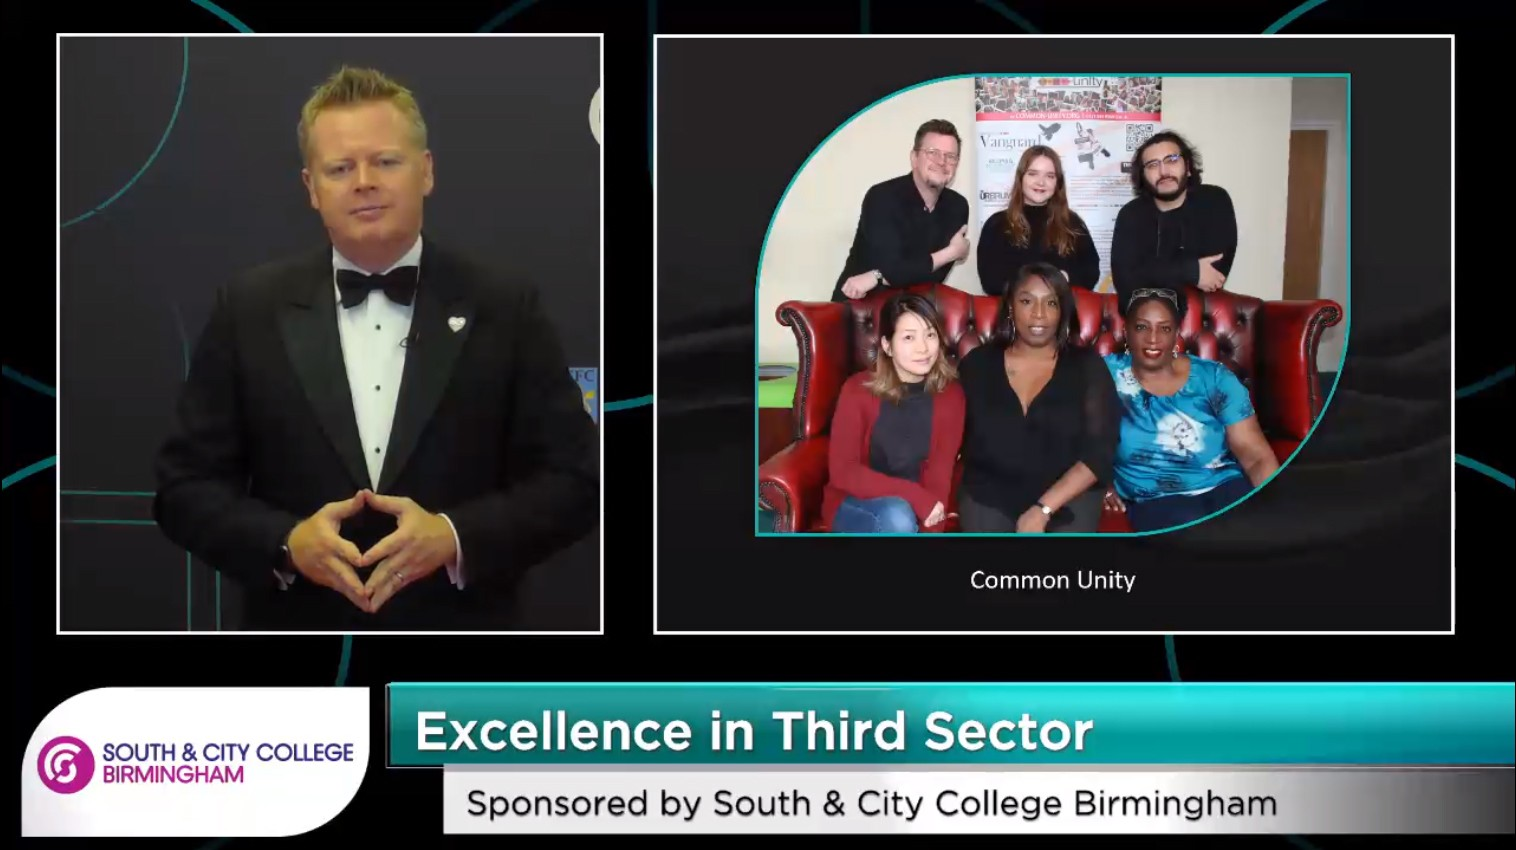 Common-Unity and the Excellence in Third Sector Award